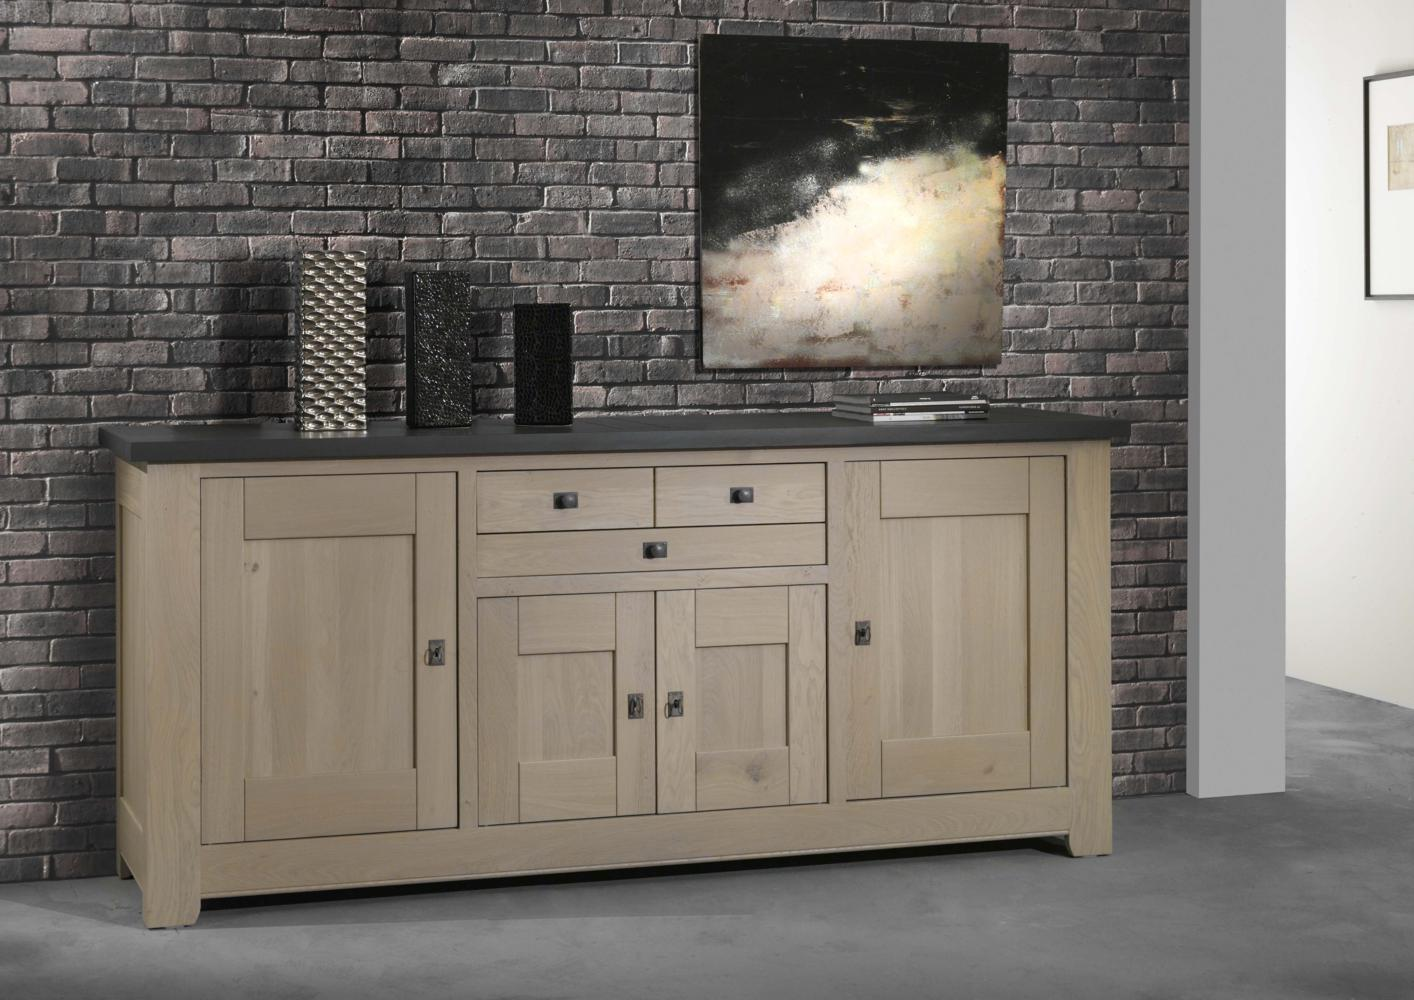 acheter votre bahut bas en ch ne bicolor 4 portes 2 tiroirs chez simeuble. Black Bedroom Furniture Sets. Home Design Ideas